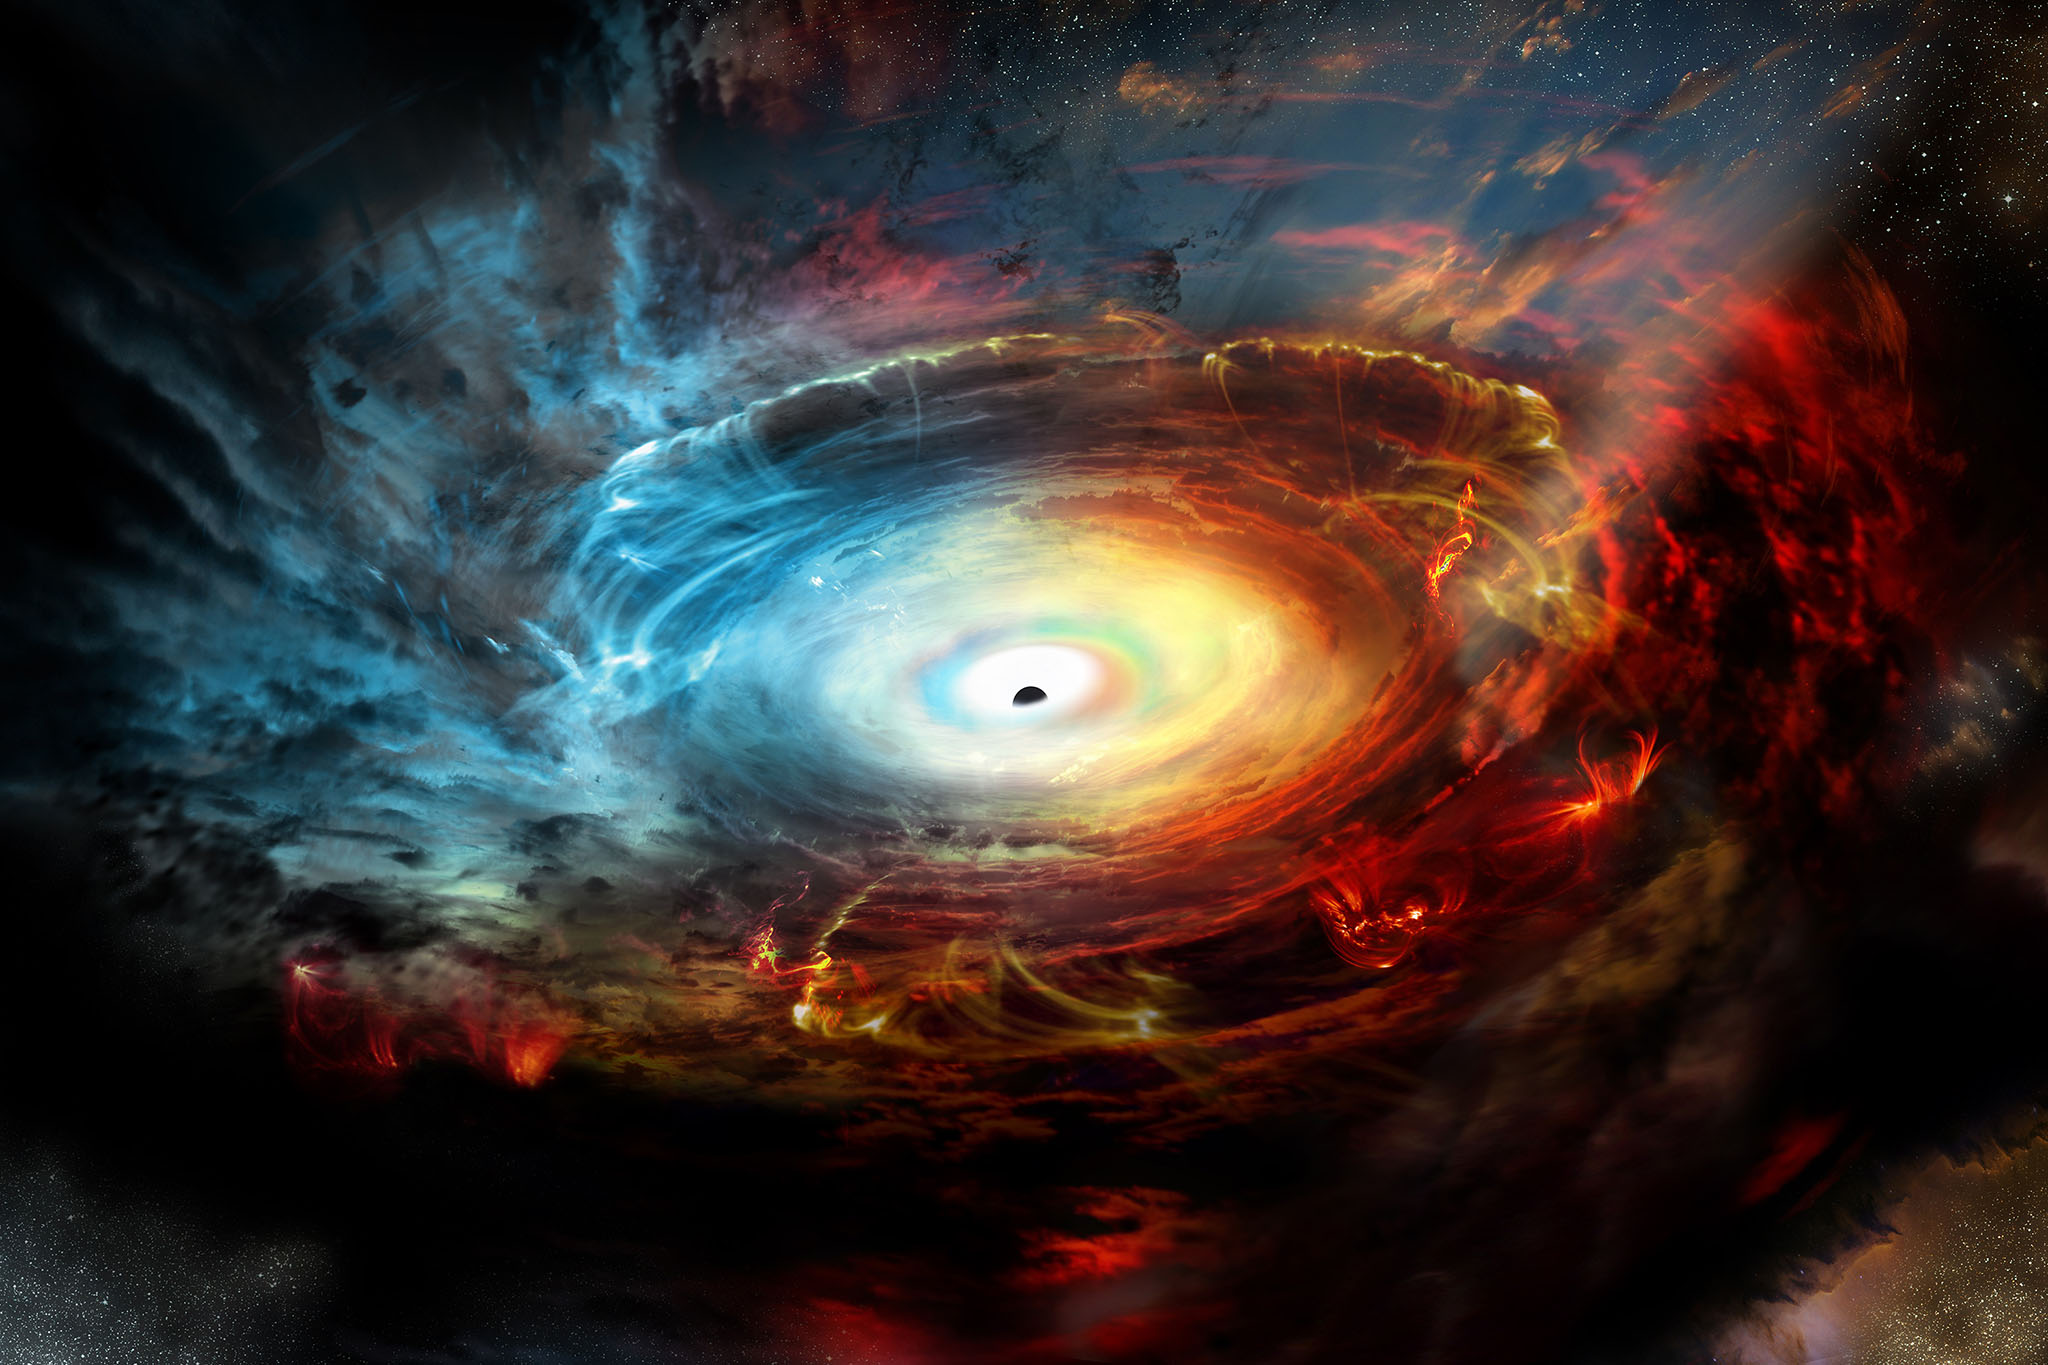 The Event Horizon Telescope, housed in MIT, was used over the course of the past two weeks in order to capture several photographs of the super massive black hole residing in the center of our galaxy. The is one of the images, illustrated by MIT artists.